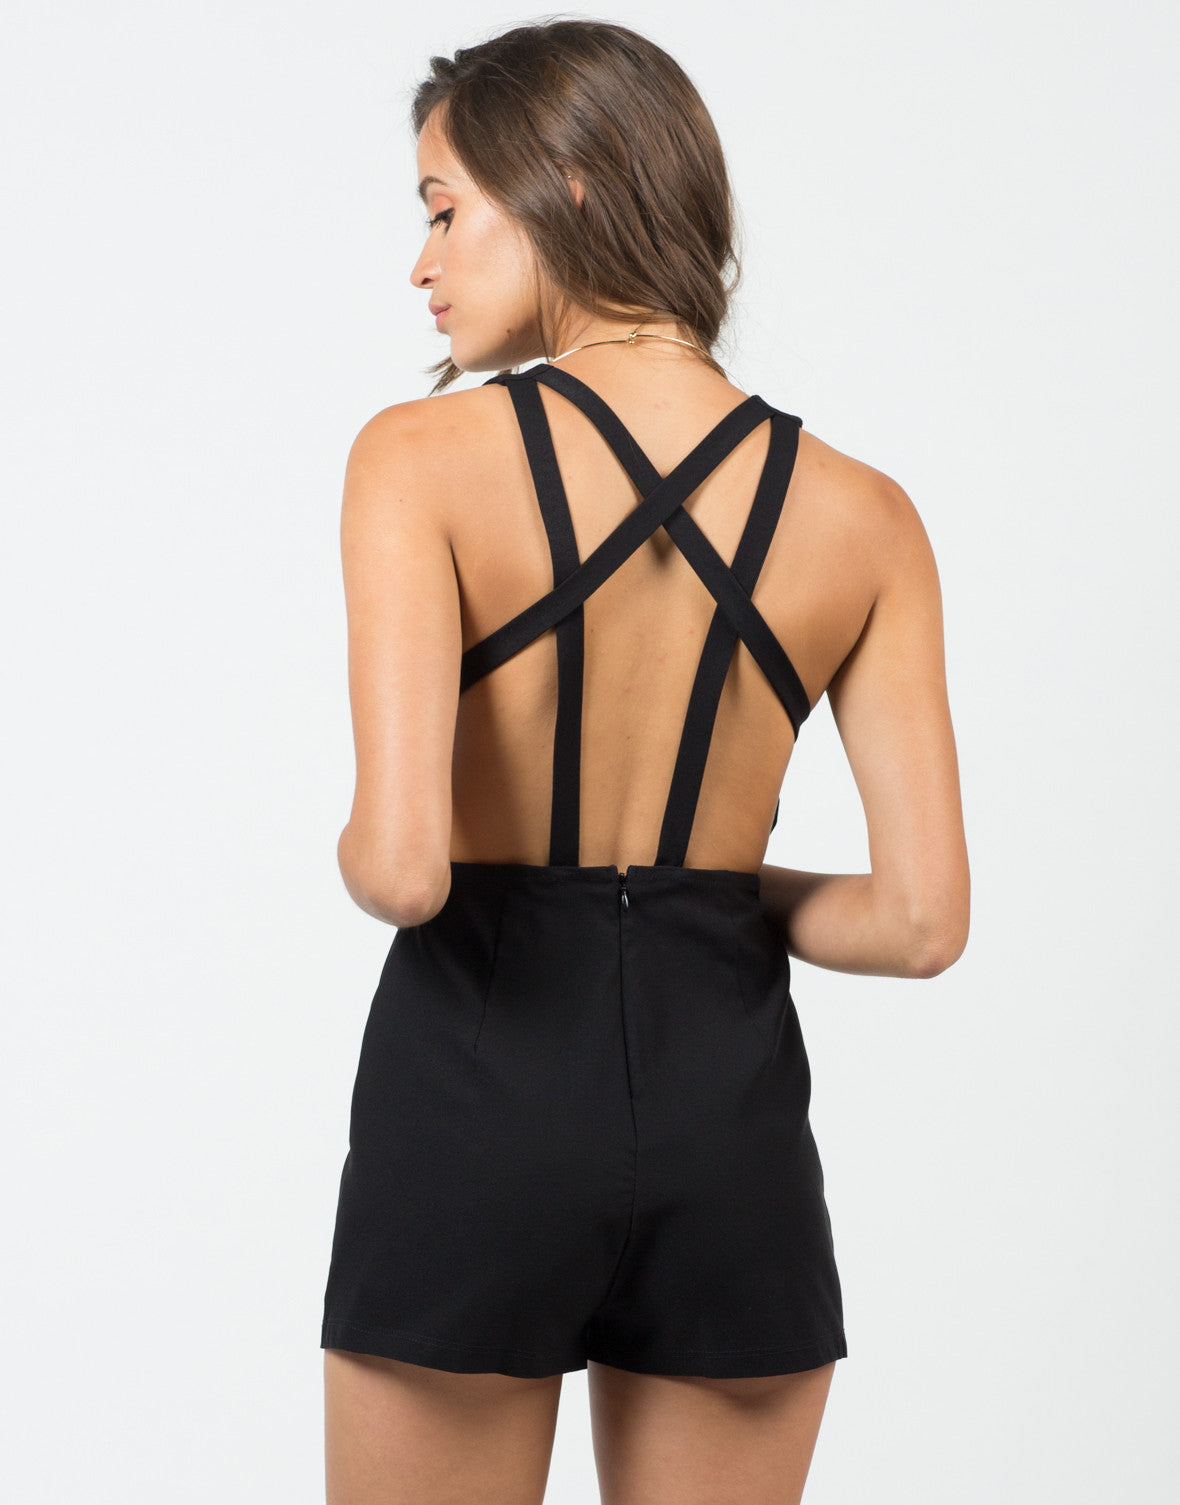 Strappy Deep Sweetheart Romper - Large - 2020AVE